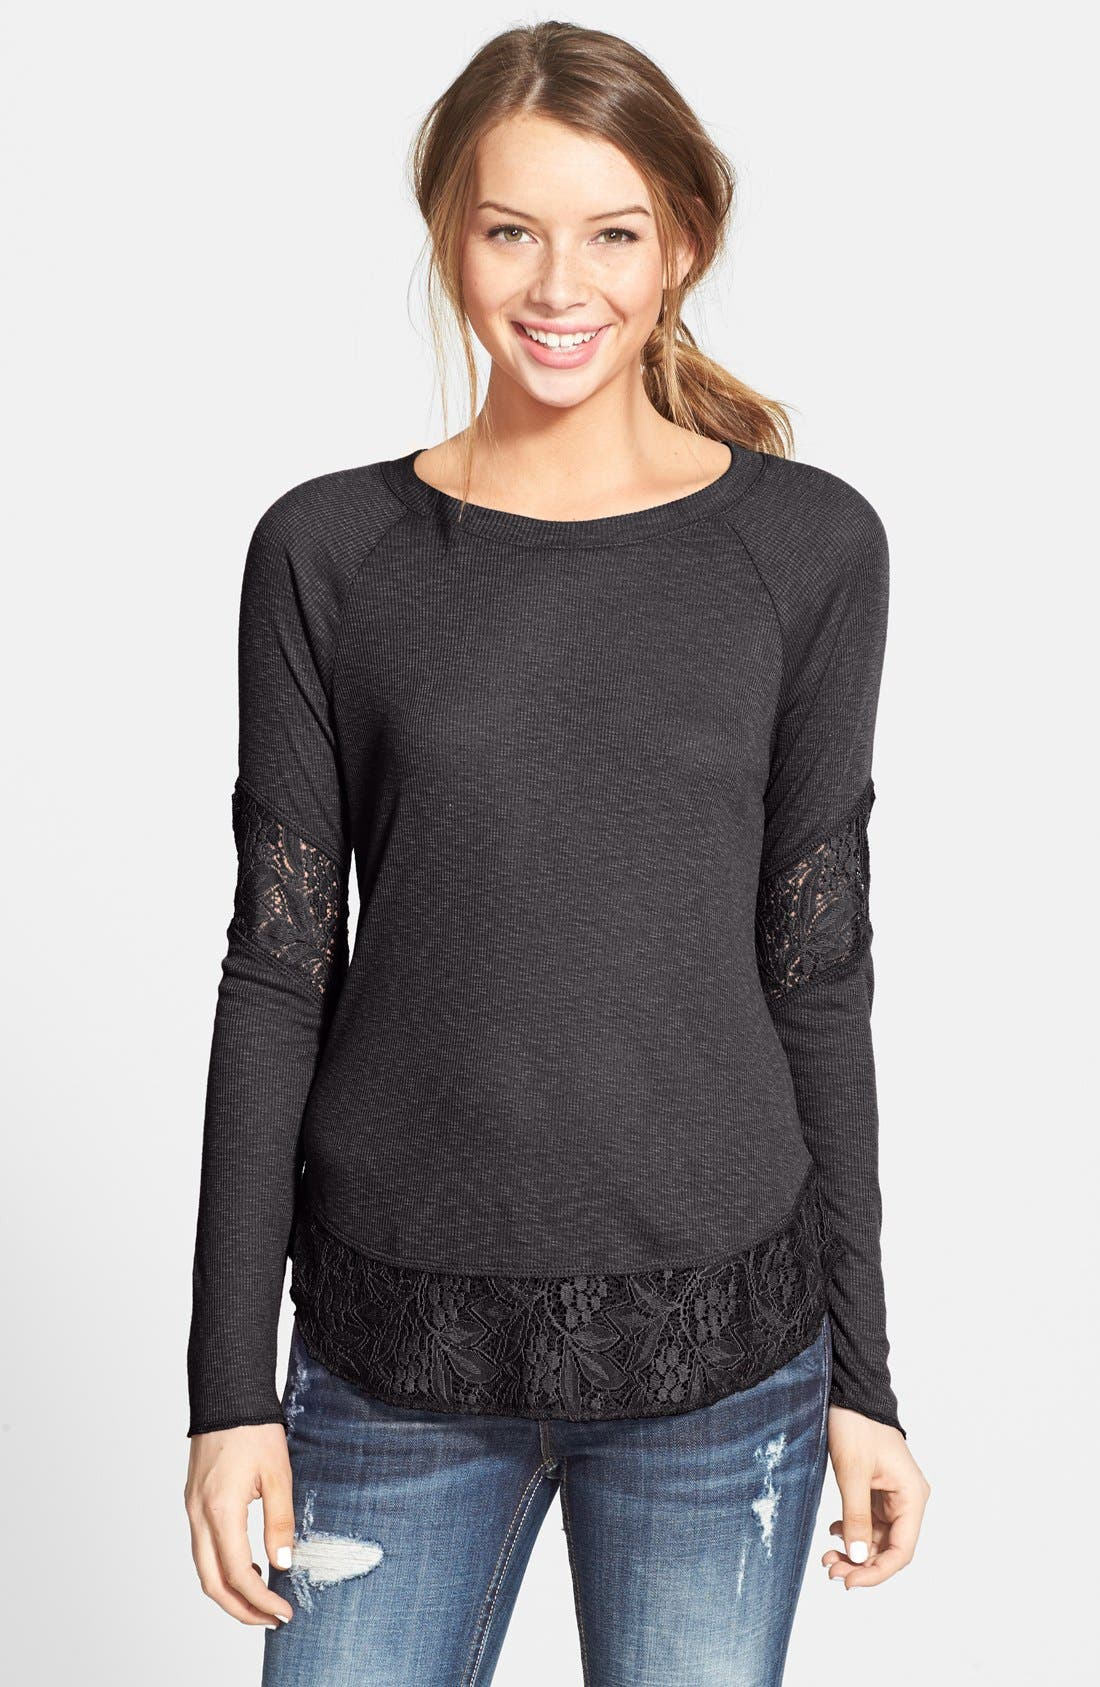 SUN & SHADOW Lace Trim Thermal Top, Main, color, 201